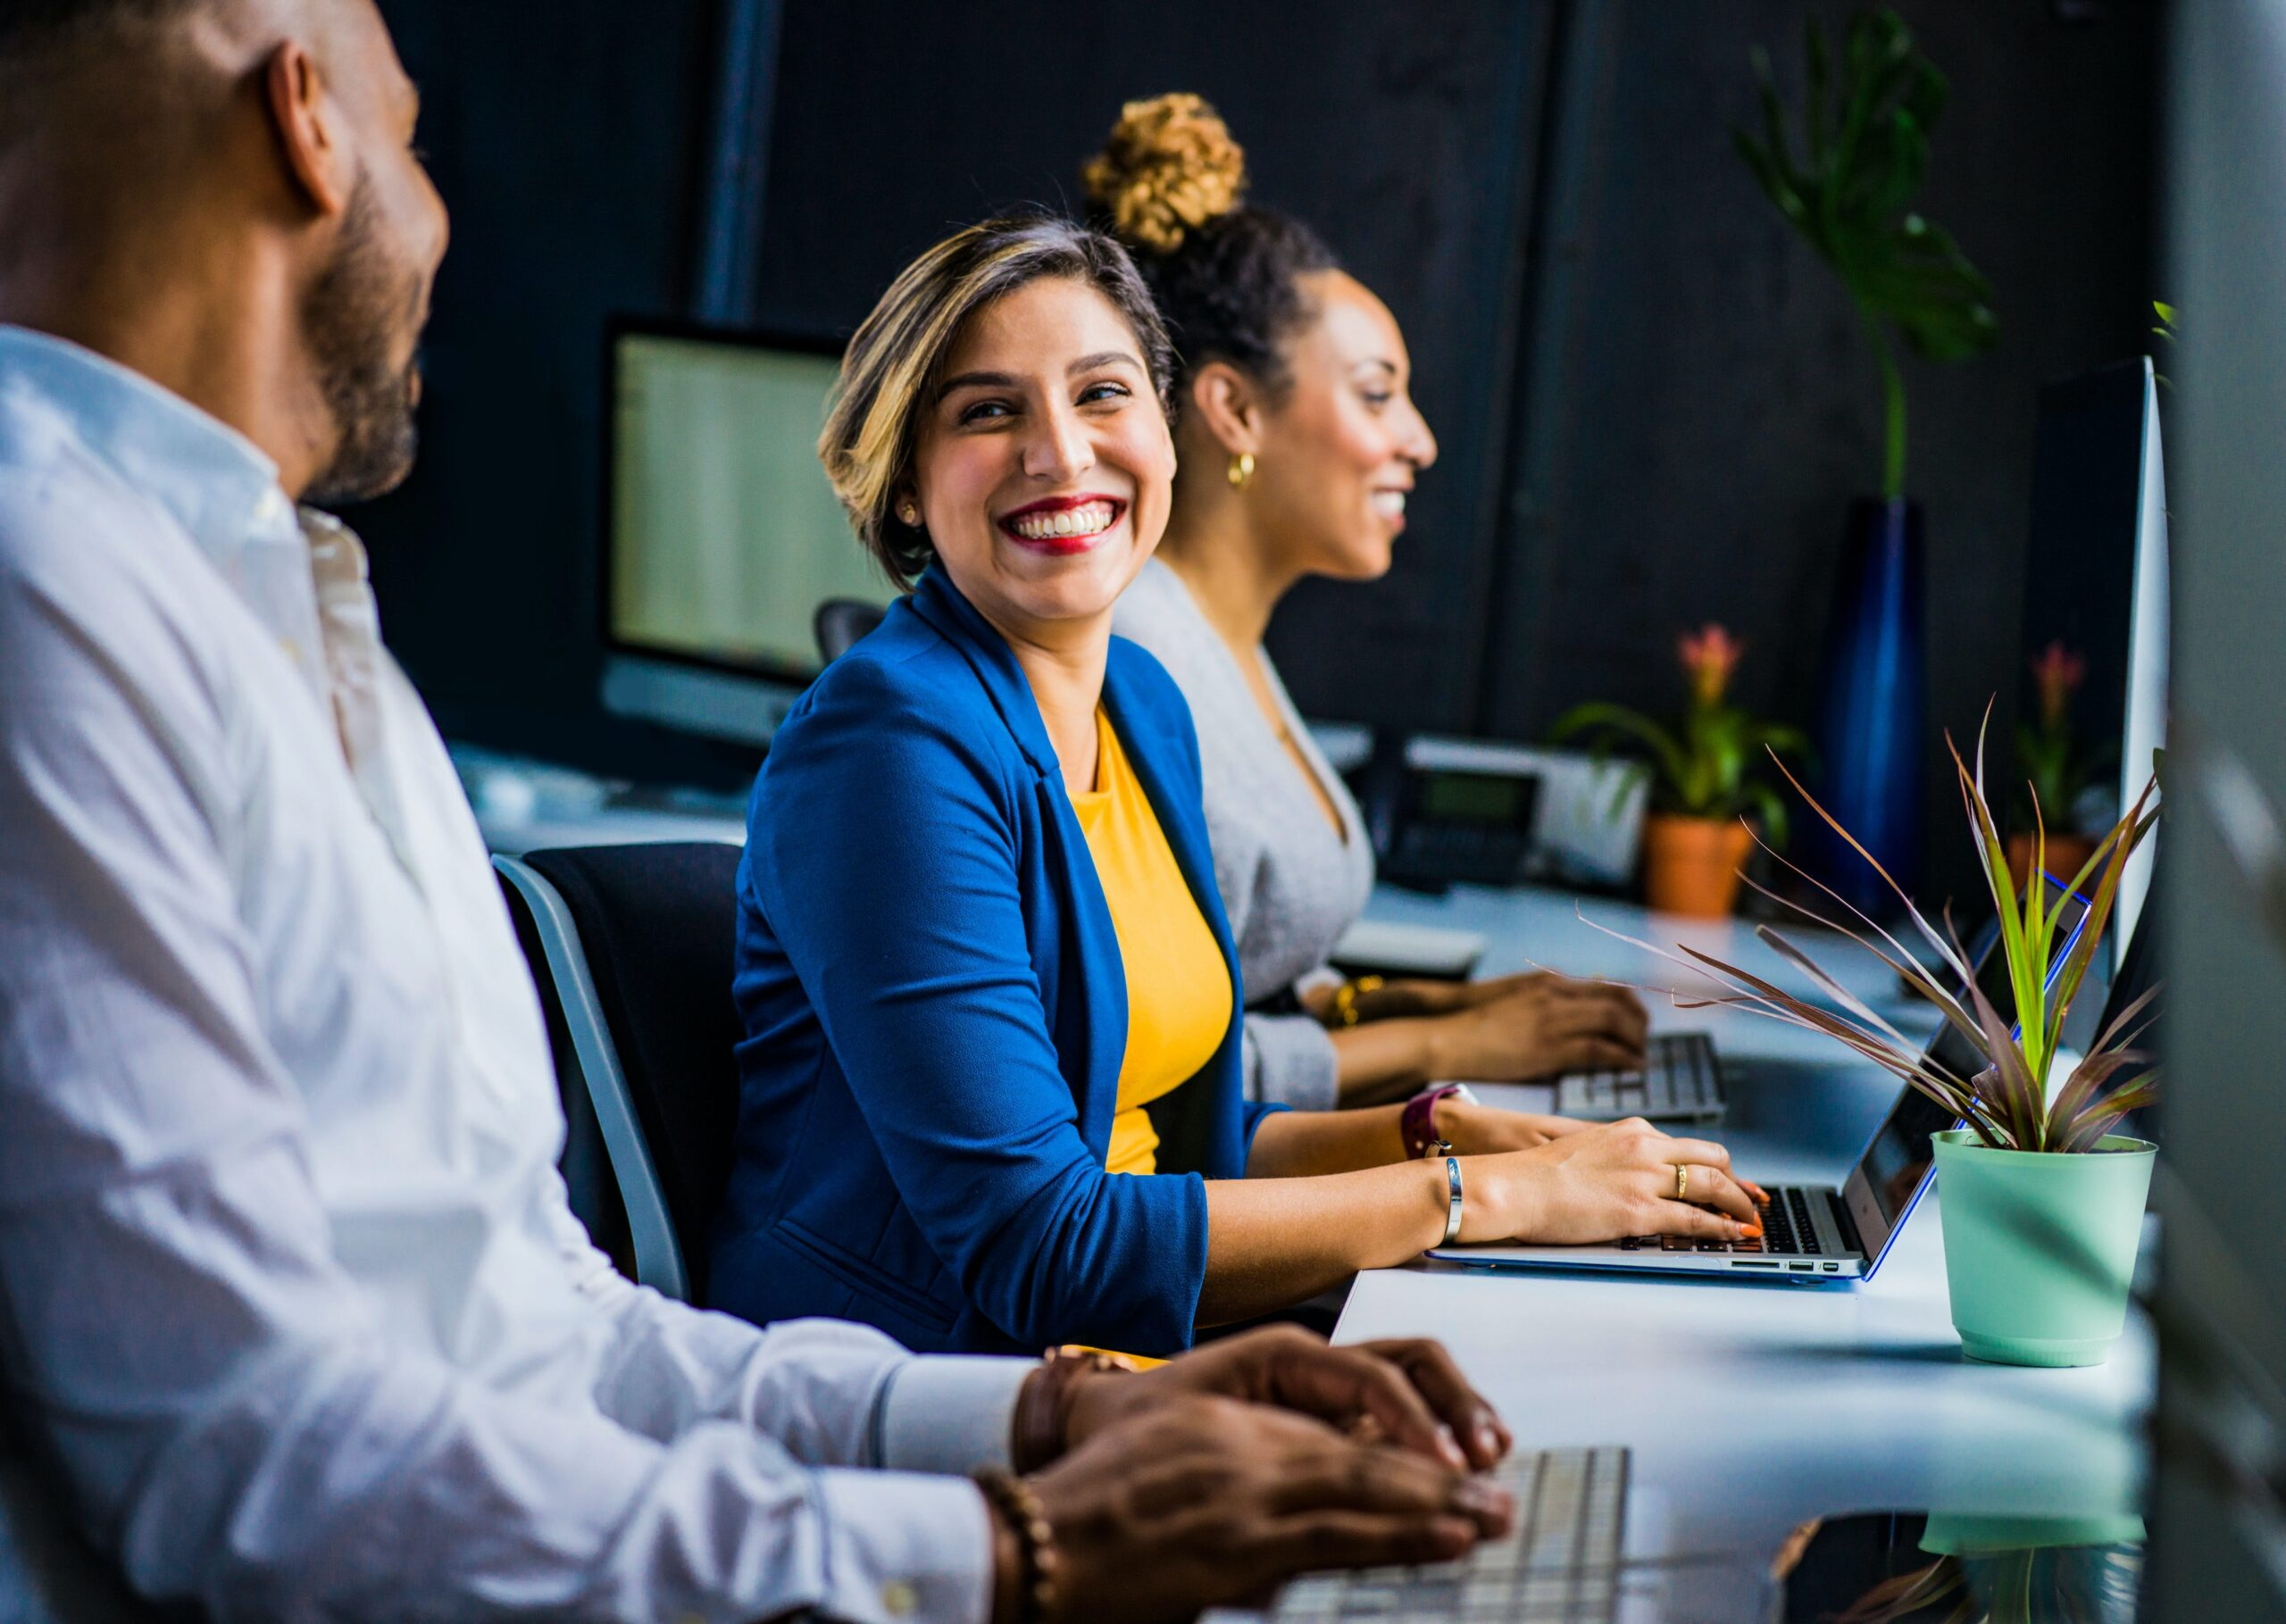 5 Things You Must Consider When Transitioning Into the New Working World